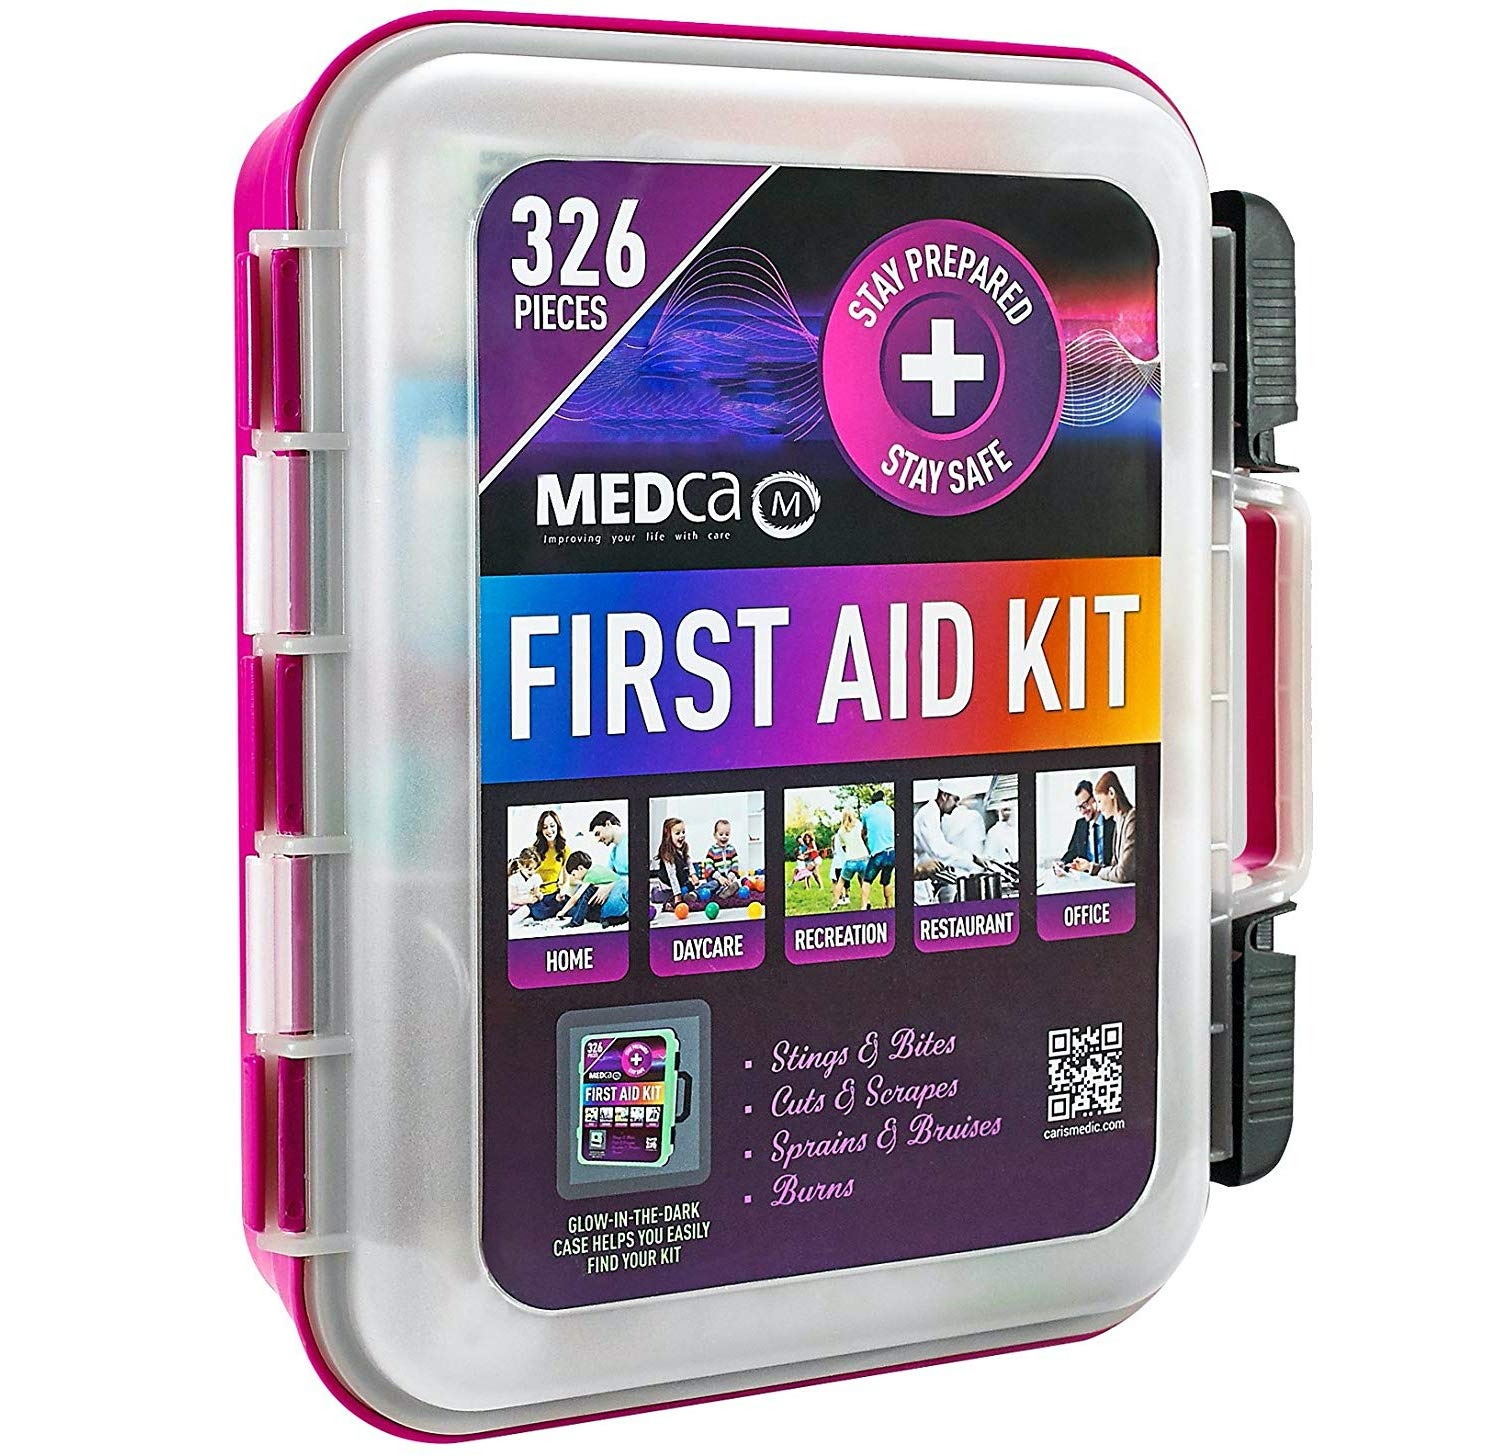 MEDca First Aid Kit Emergency First Aid Kit and Medical Kit Exceeds ANSI Z308.1-2009 OSHA Standards, Hard Case, Wall Mount & Glows in The Dark for Offices, Home, Schools, Daycare, Construction Sites